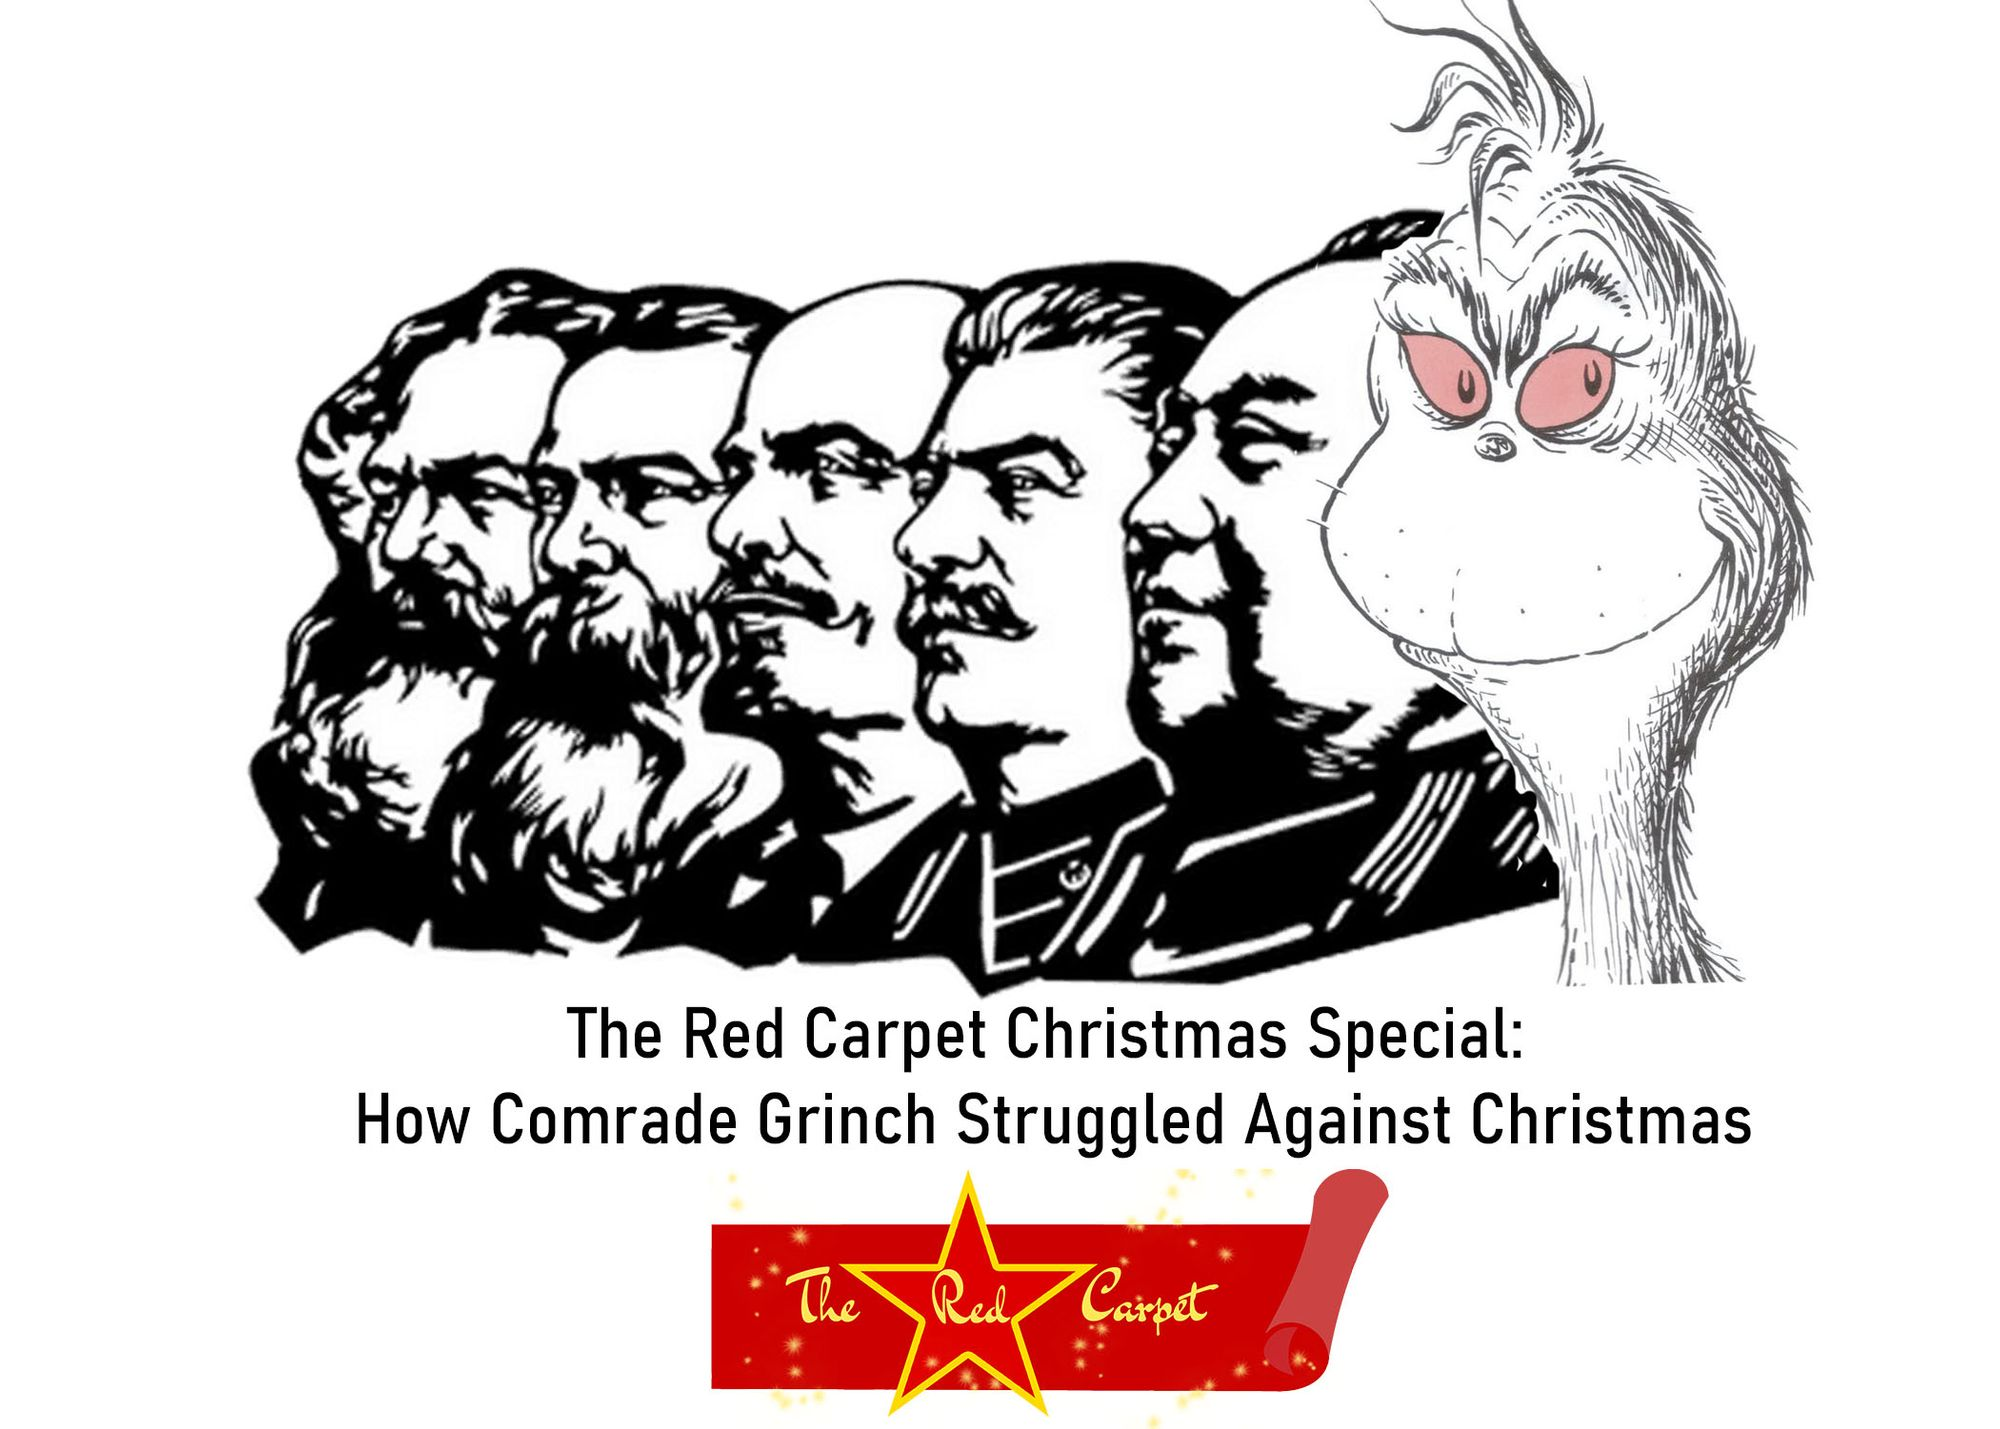 The Red Carpet Christmas Special: How Comrade Grinch Struggled Against Christmas